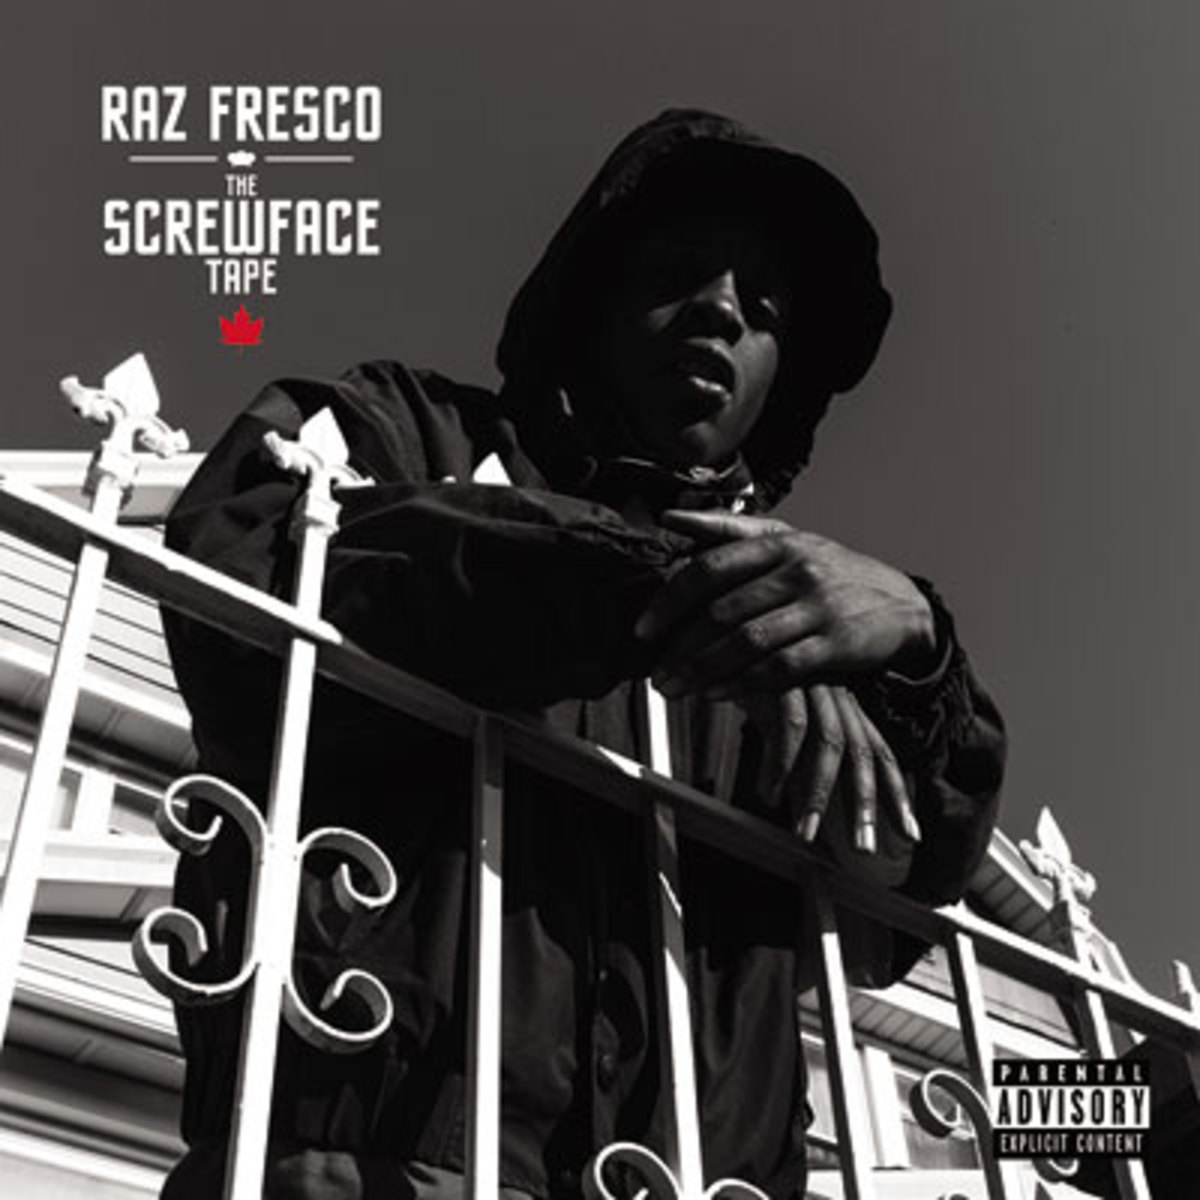 razfresco-screwface.jpg